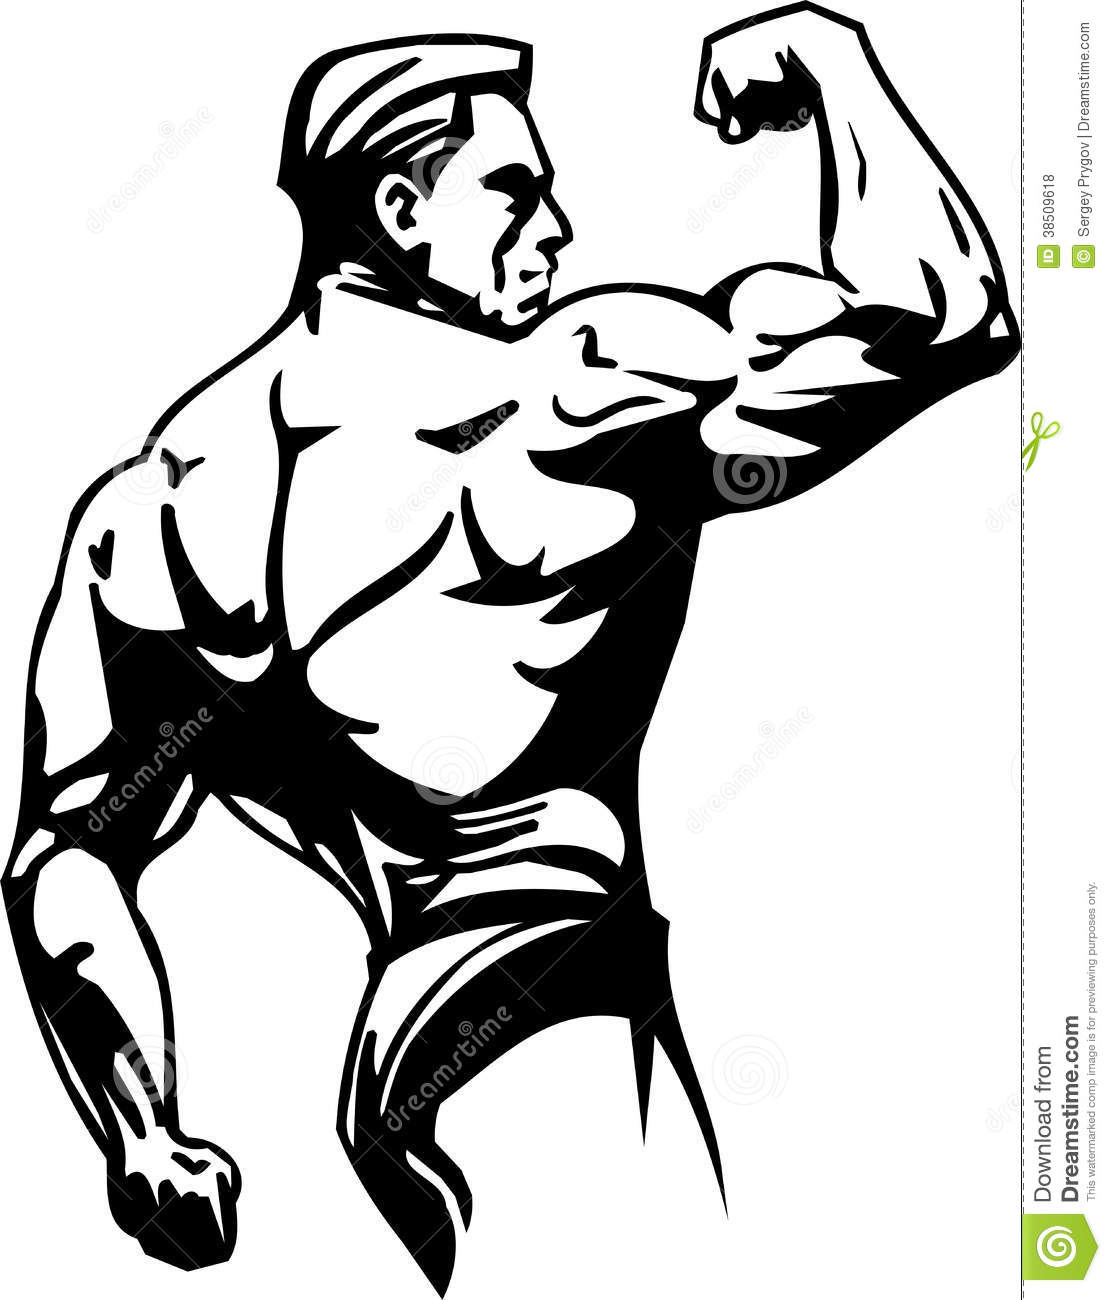 Bodybuilding And Powerlifting - Vector. Royalty Free Stock